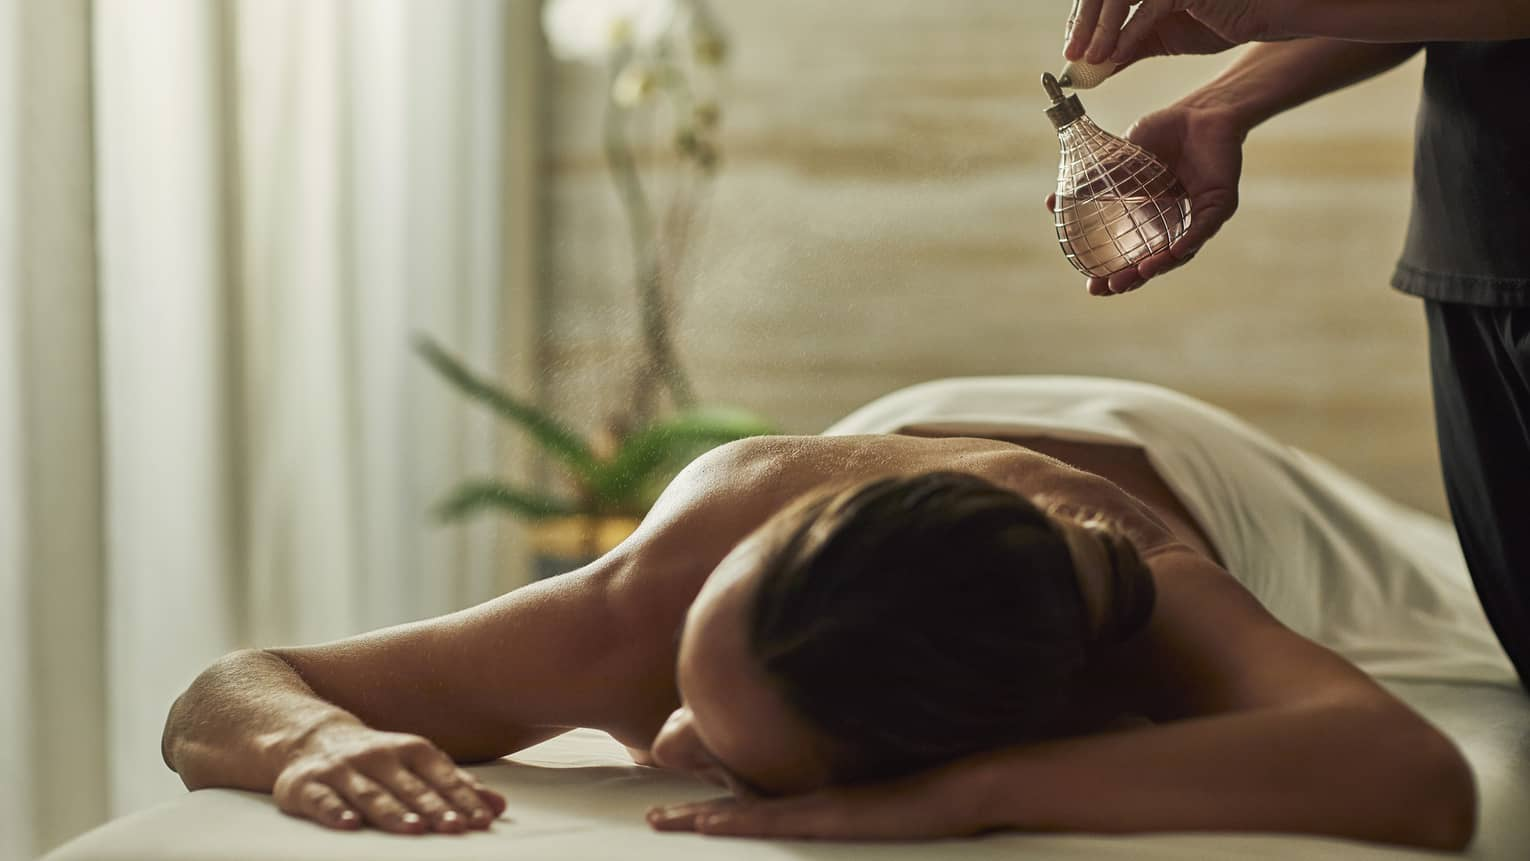 Spa staff sprays perfume bottle over woman lying on massage table